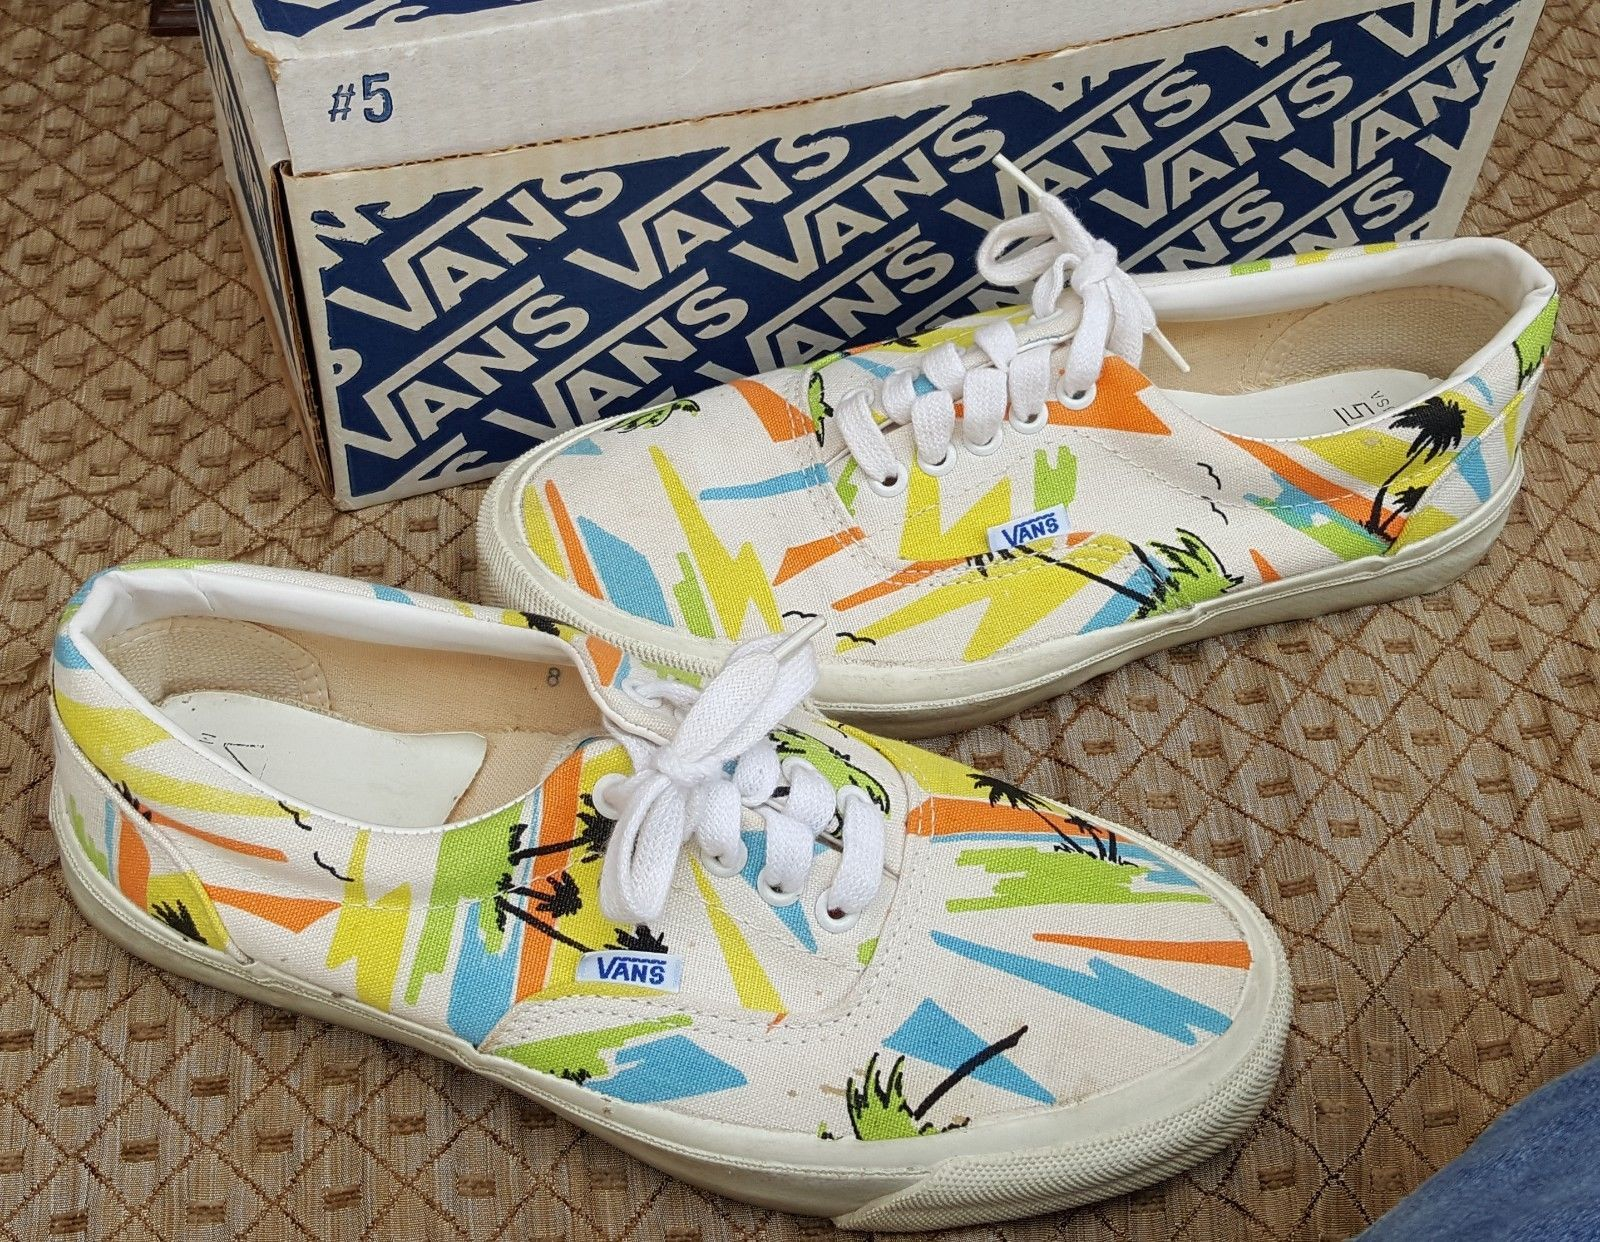 afb00abe4ea4db Vtg Original USA 1970s 1980s Vans Off The Wall Skateboarding Shoes in Box  Size 8 Sneaker